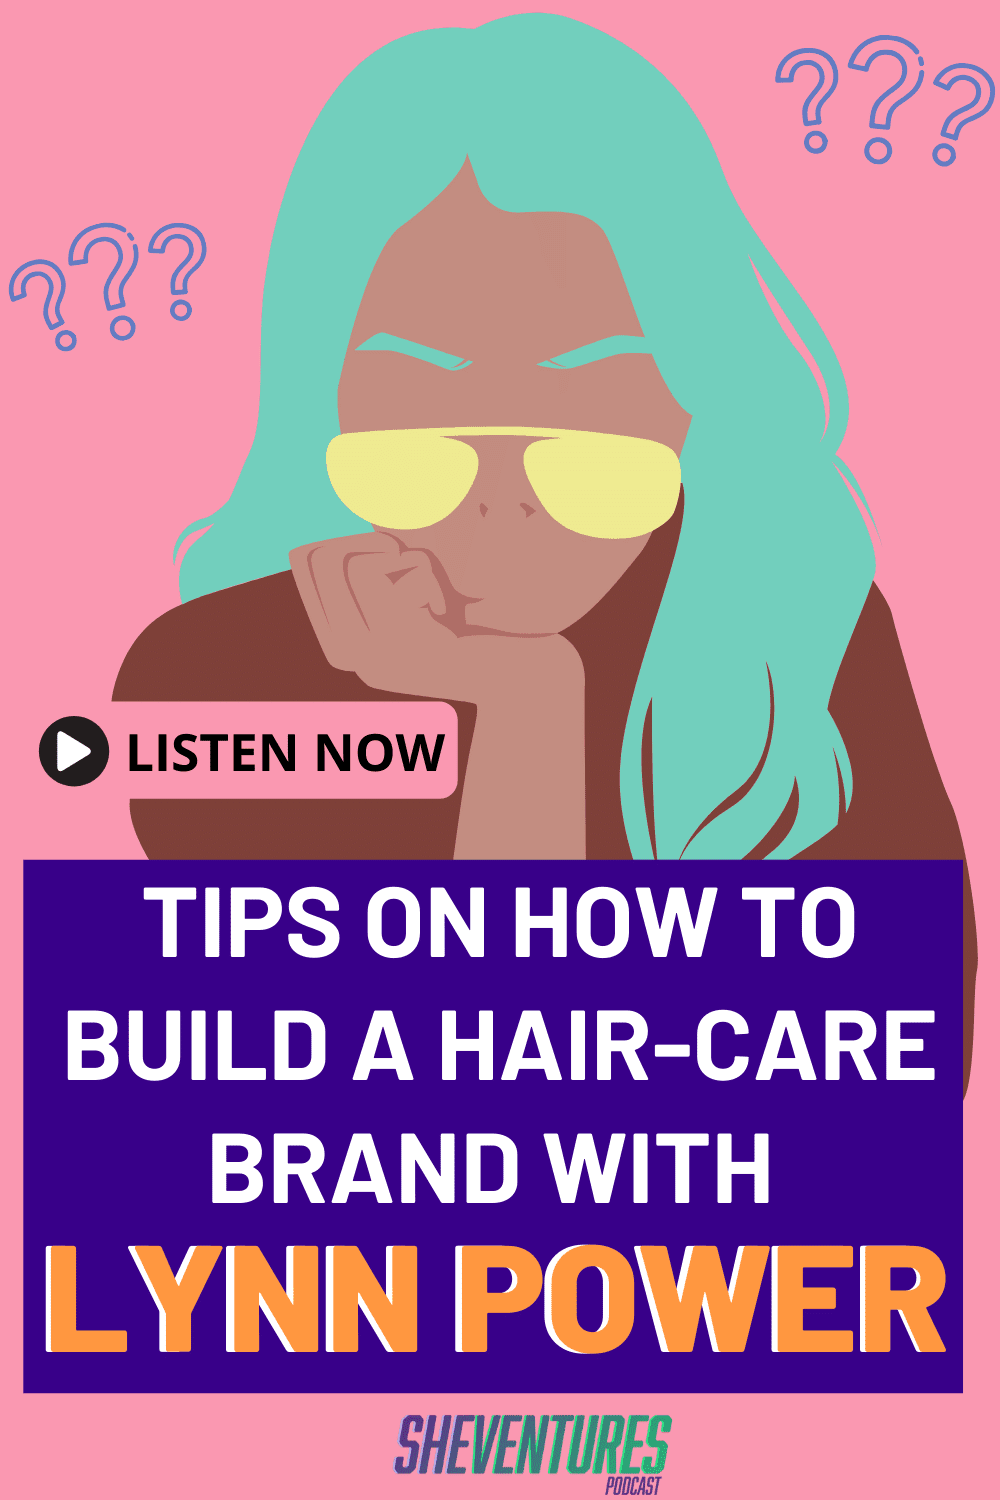 Tips on How to Build a Hair-Care Brand With Lynn Power